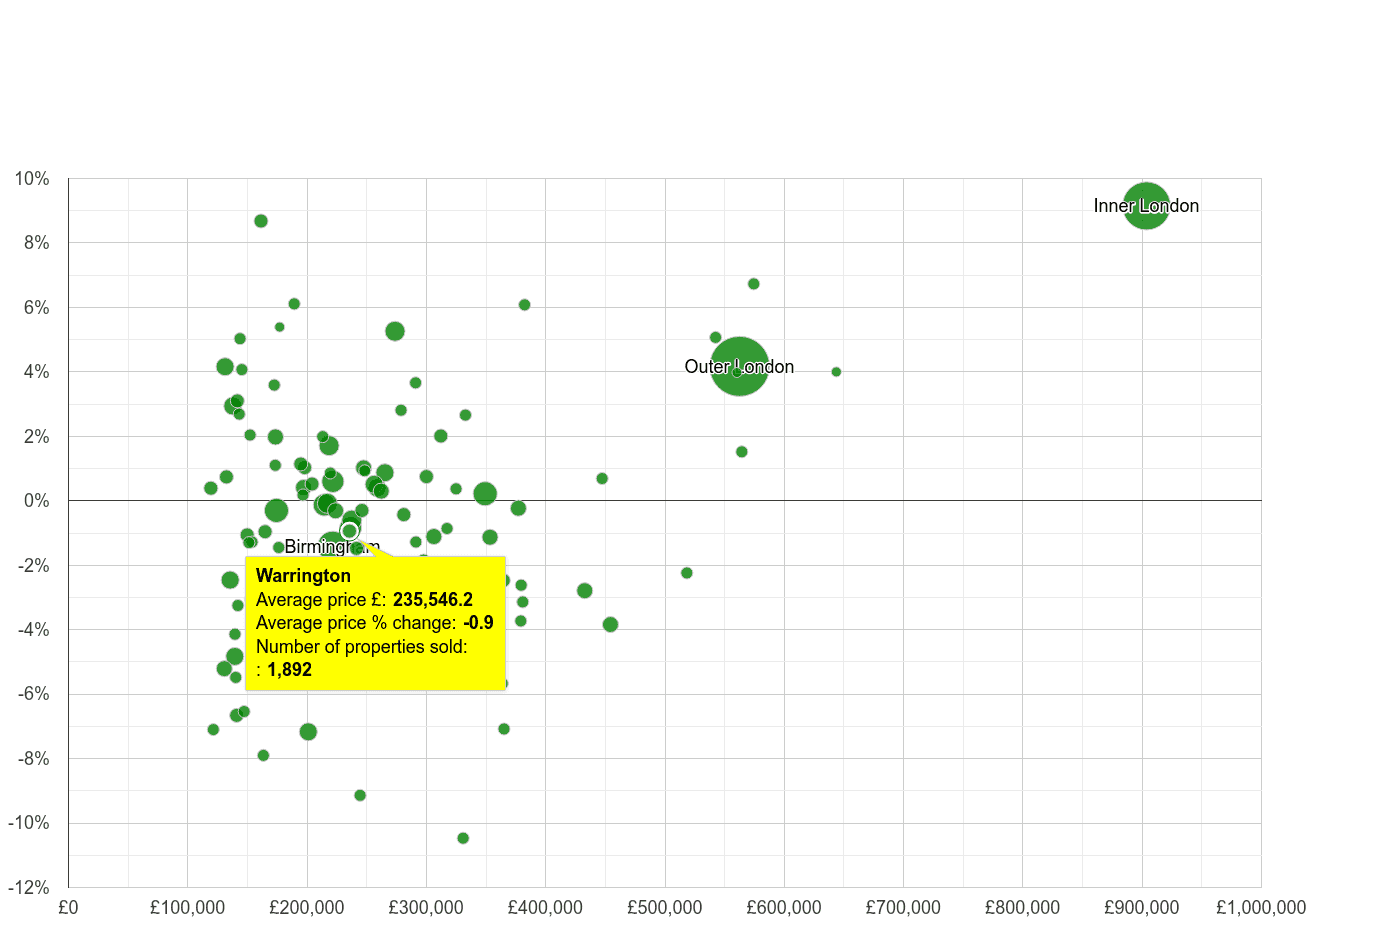 Warrington house prices compared to other cities